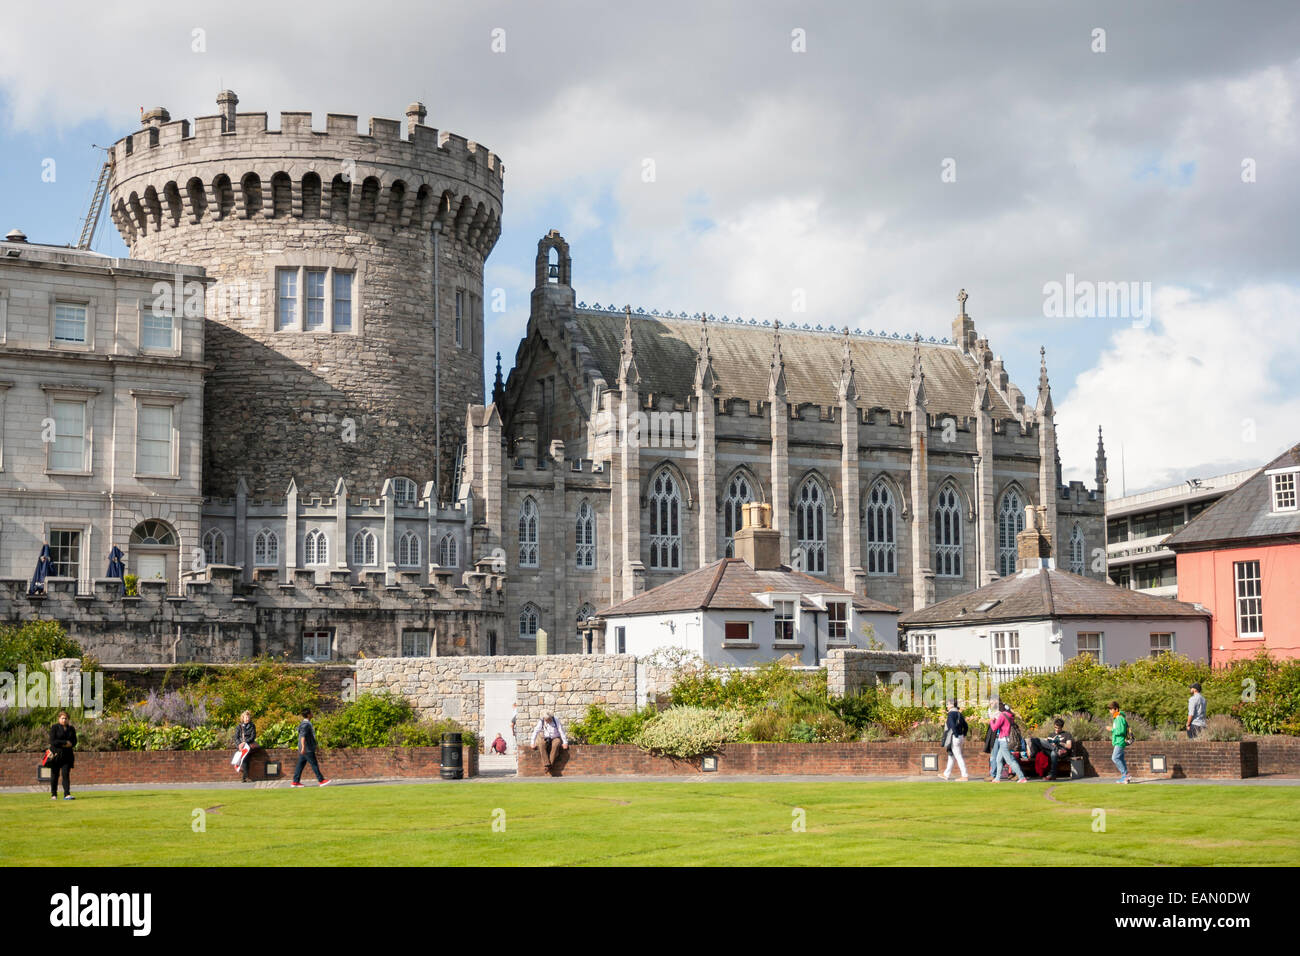 Dublin, Ireland - Aug 11, 2014: Record Tower and Chapel Royal of Dublin Castle  in Dublin, Ireland on August 11, - Stock Image